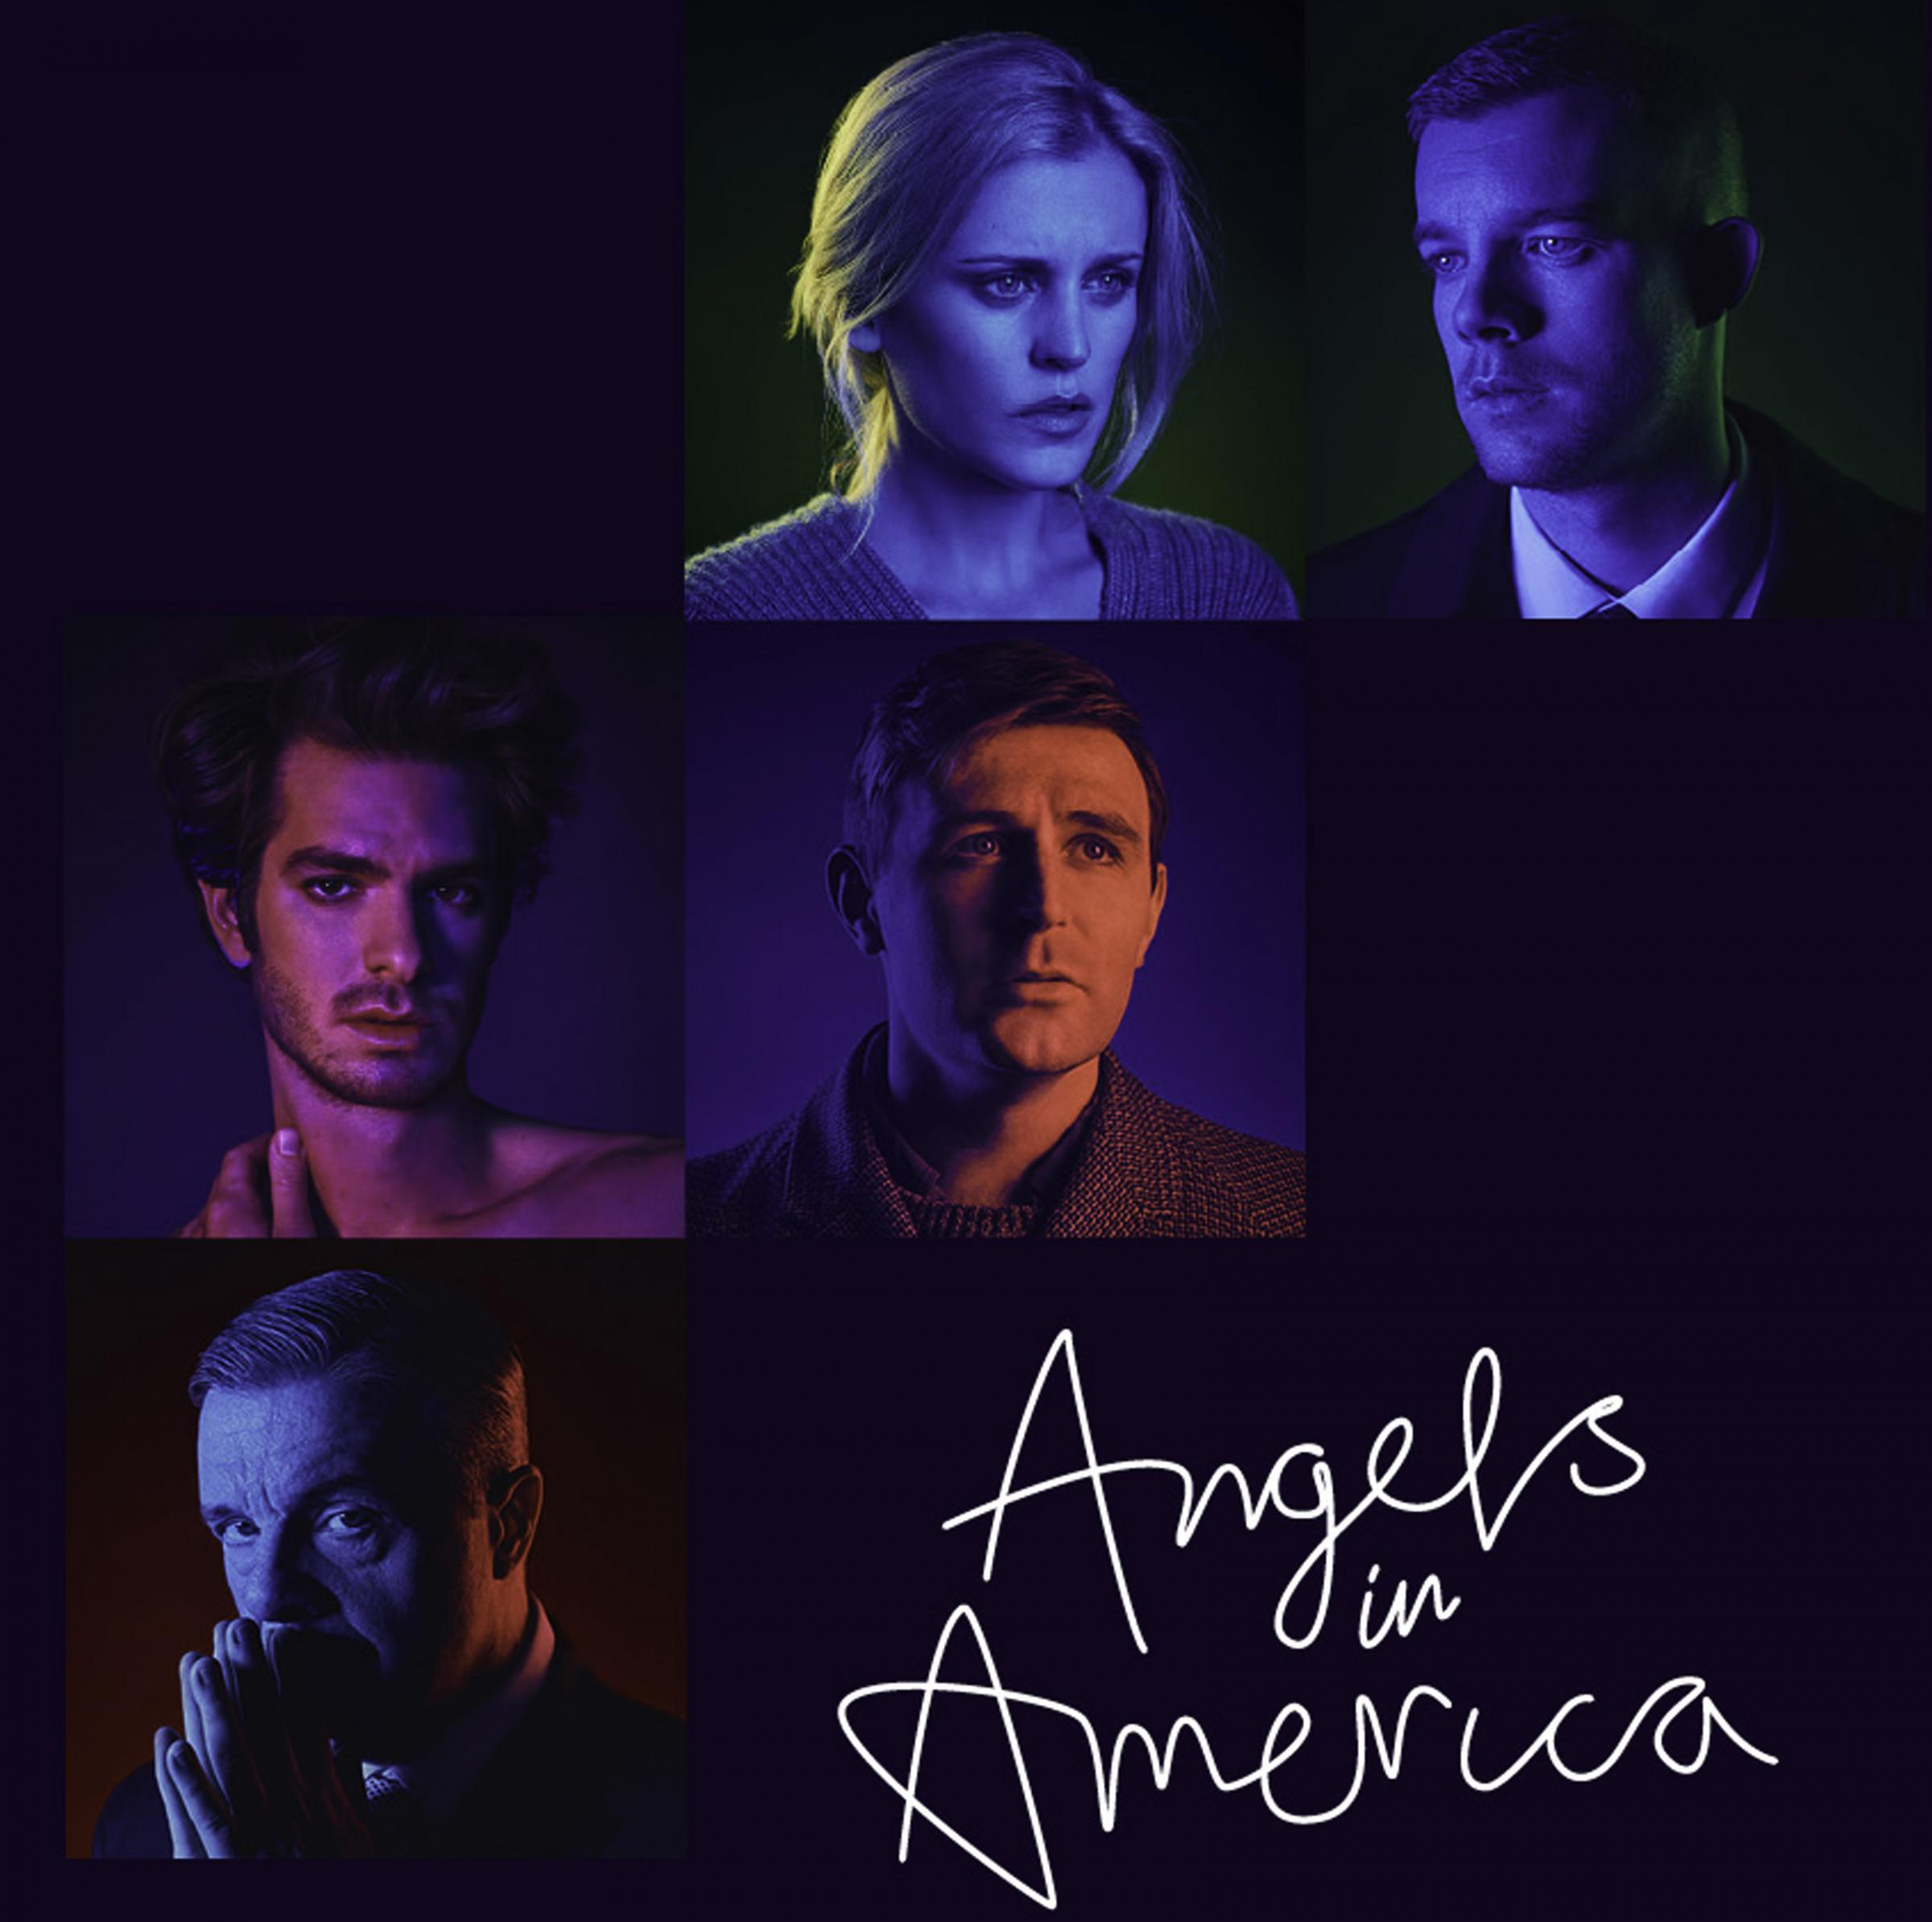 Angels in America - Part II, Perestroika